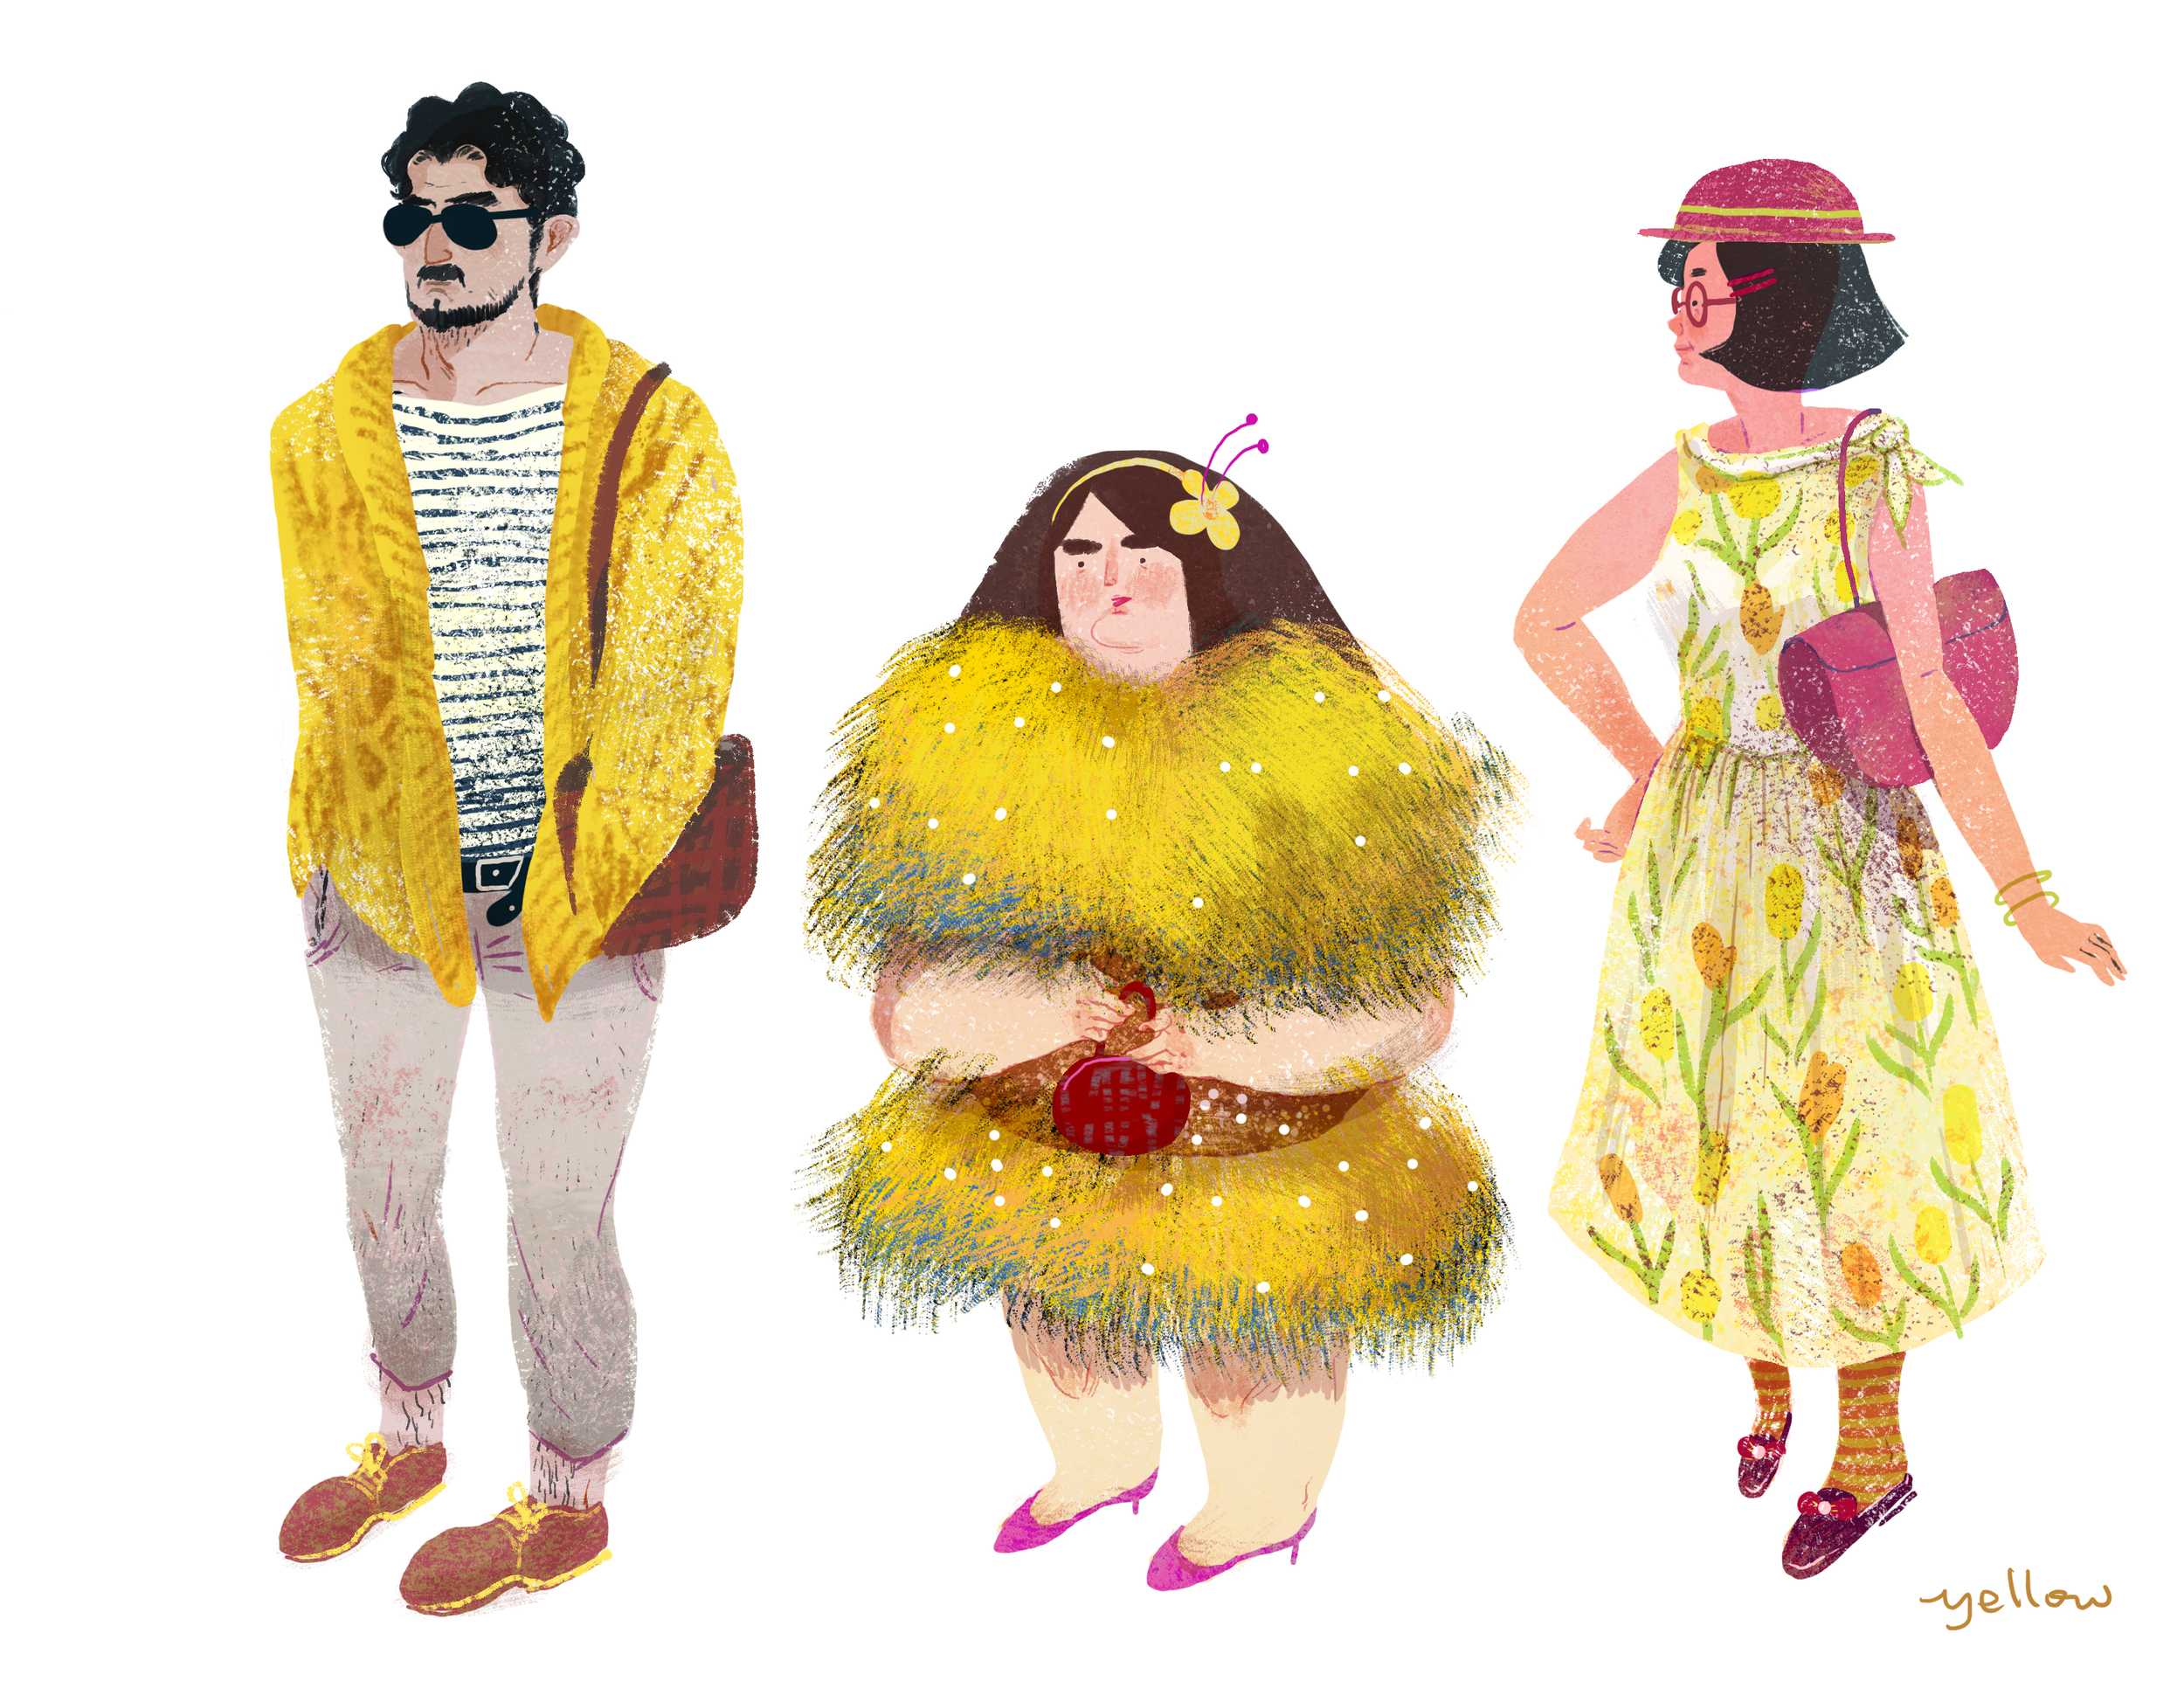 lifestyle drawing charactor yellowcopy.jpg